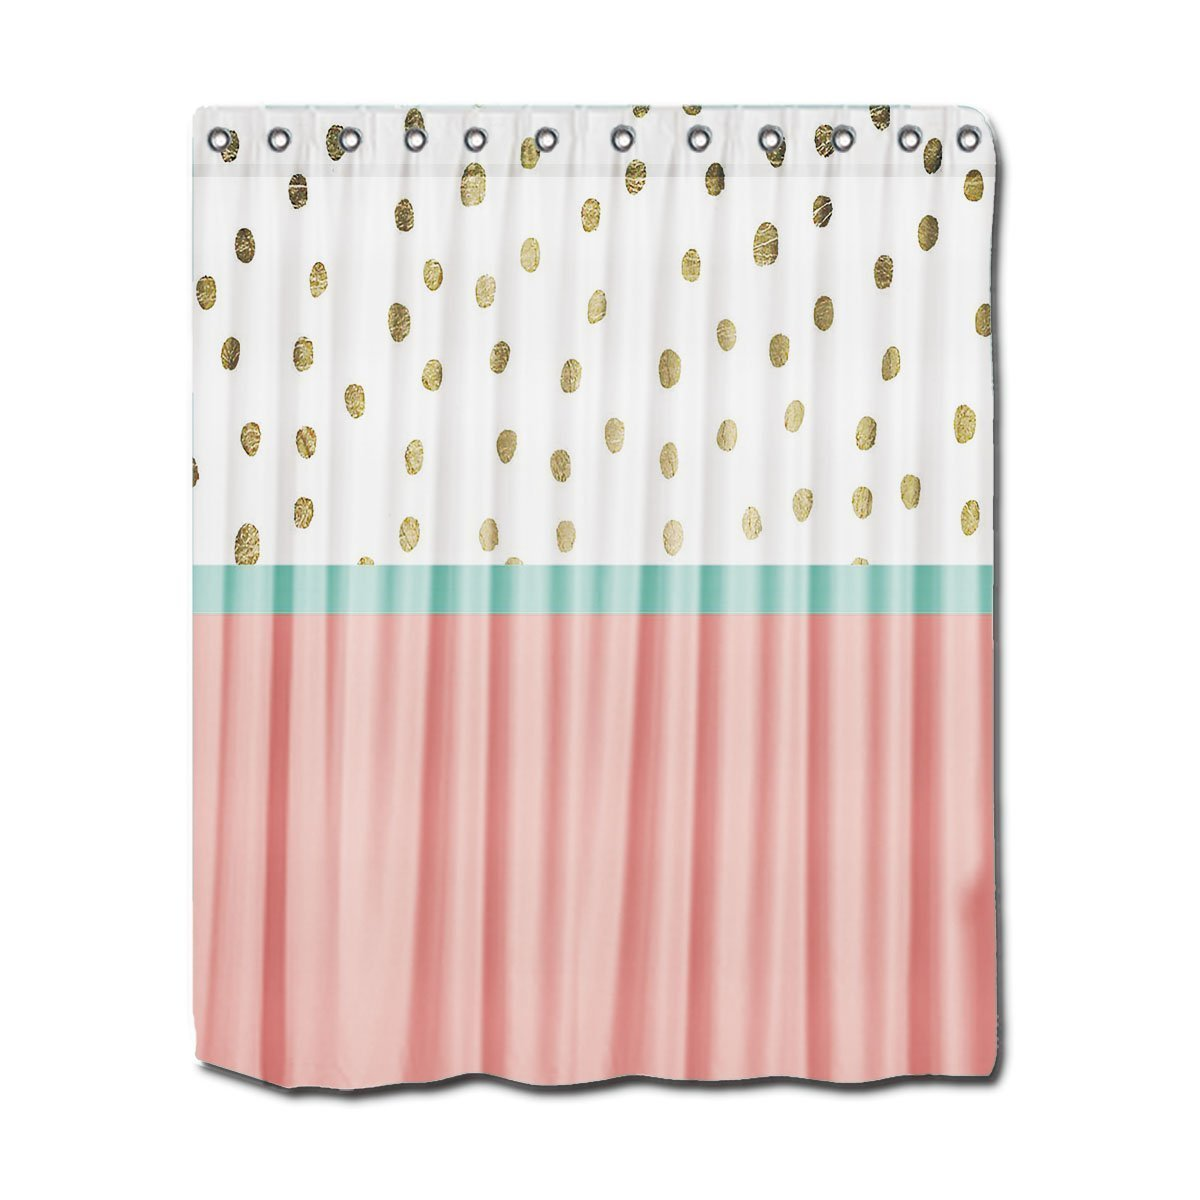 YYT Shower Curtains Coral Teal Color Block Gold Foil Polka Dots Curtain Stocked